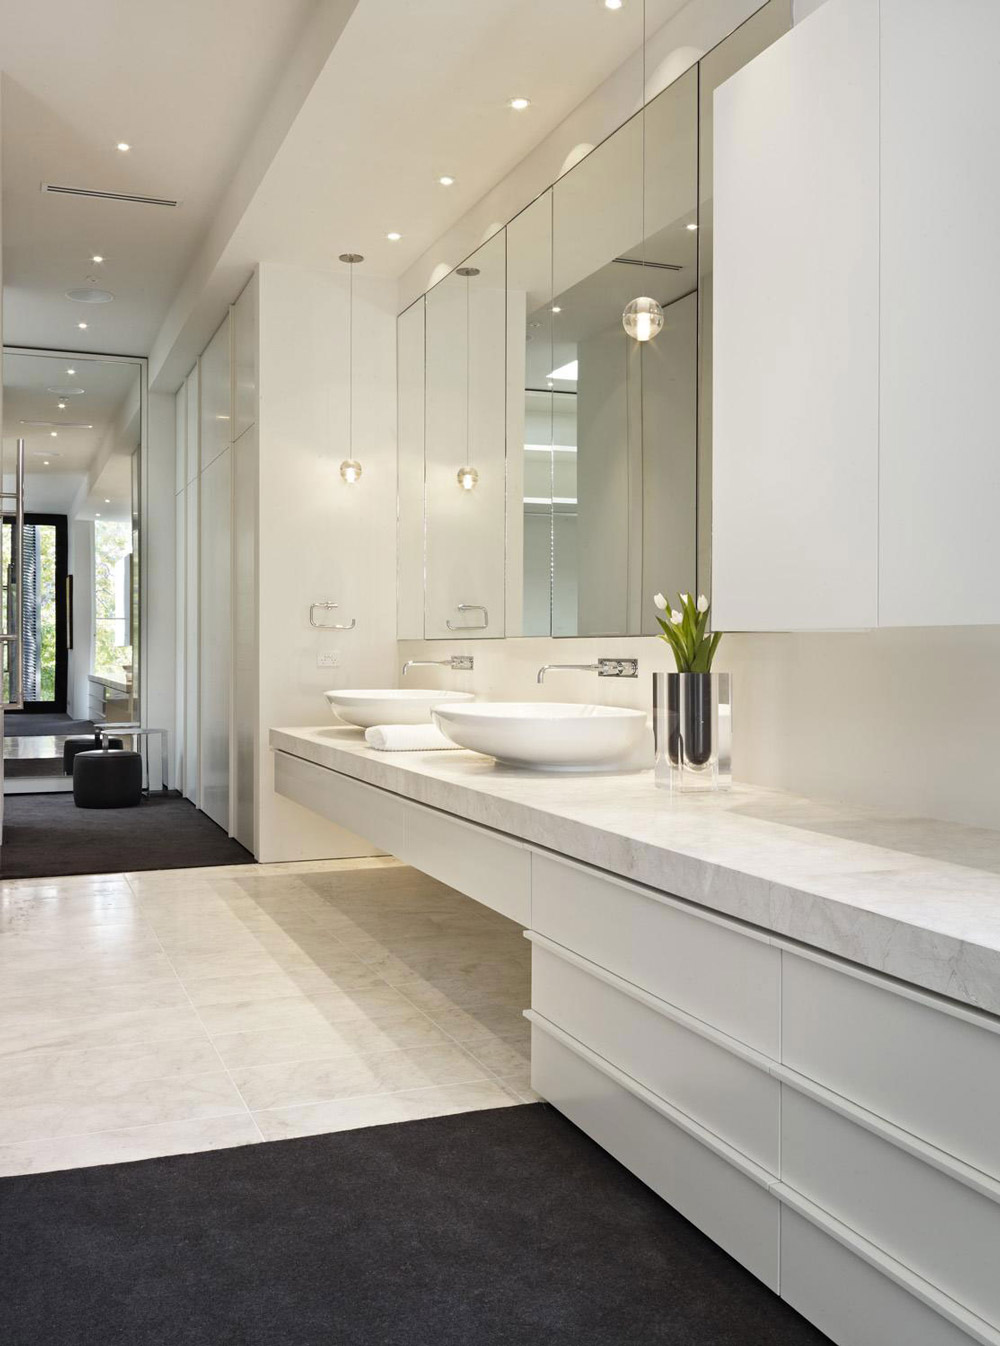 Bathroom, Sinks, Verdant Avenue Home in Melbourne, Australia by Robert Mills Architects